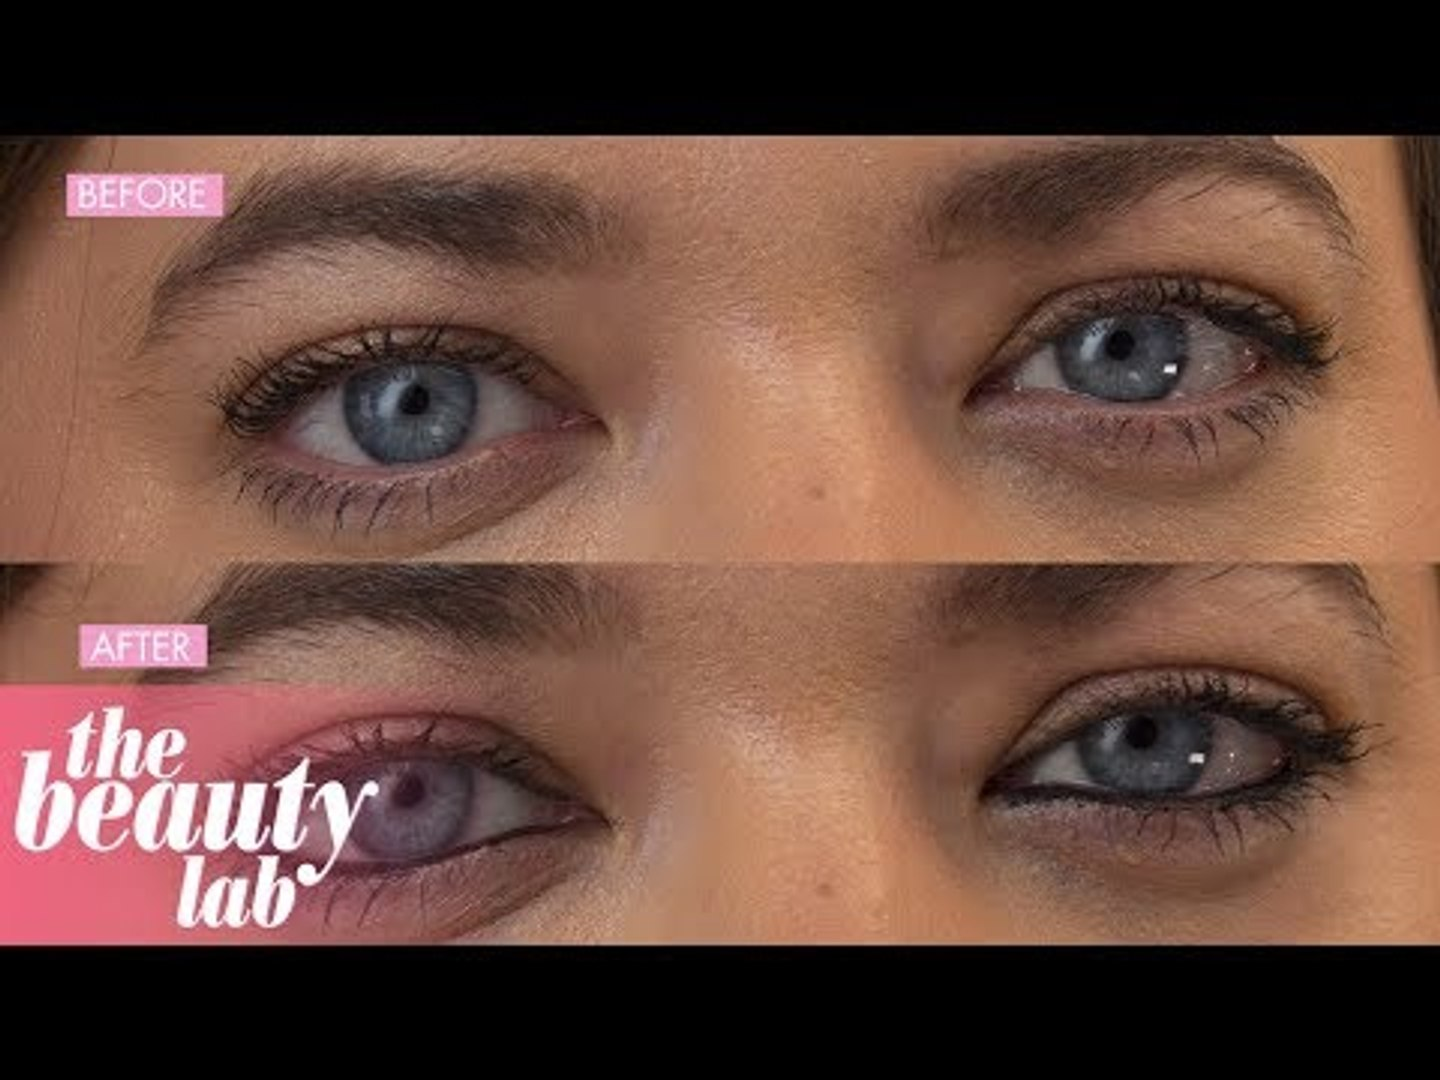 aa4875a49cd Trying Kat Von D Lash Liner Eyeliner | Review & Tutorial | Beauty Lab |  Cosmopolitan UK - video dailymotion